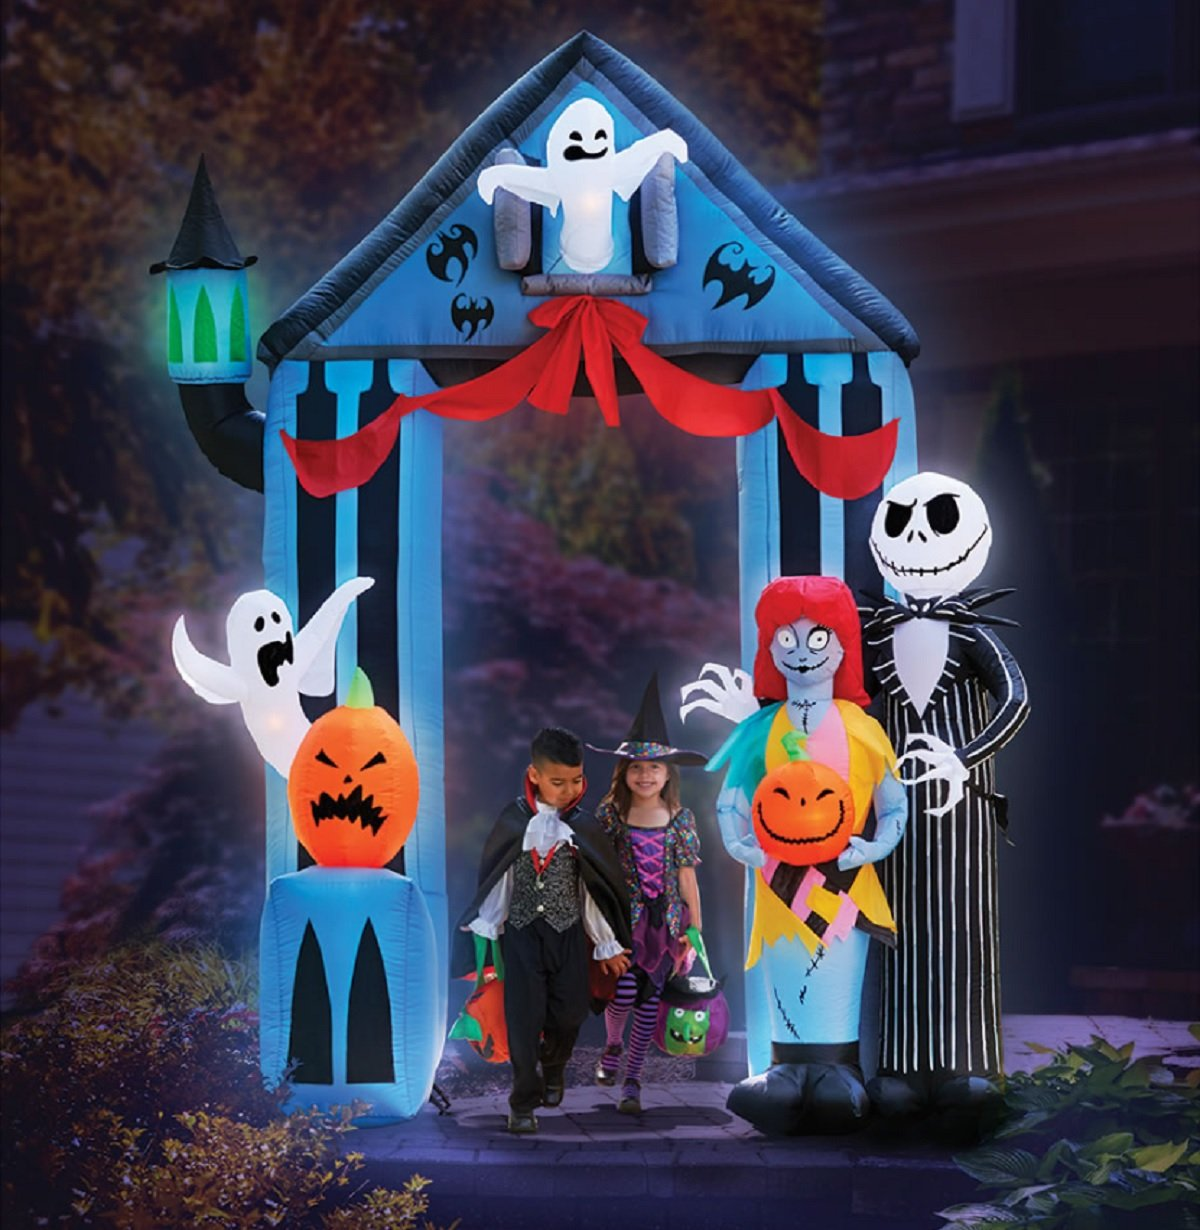 halloween 9 nightmare before christmas archway with jack skellington sally claws airblown inflatable yard decor by gemmy - Halloween Inflatable Yard Decorations